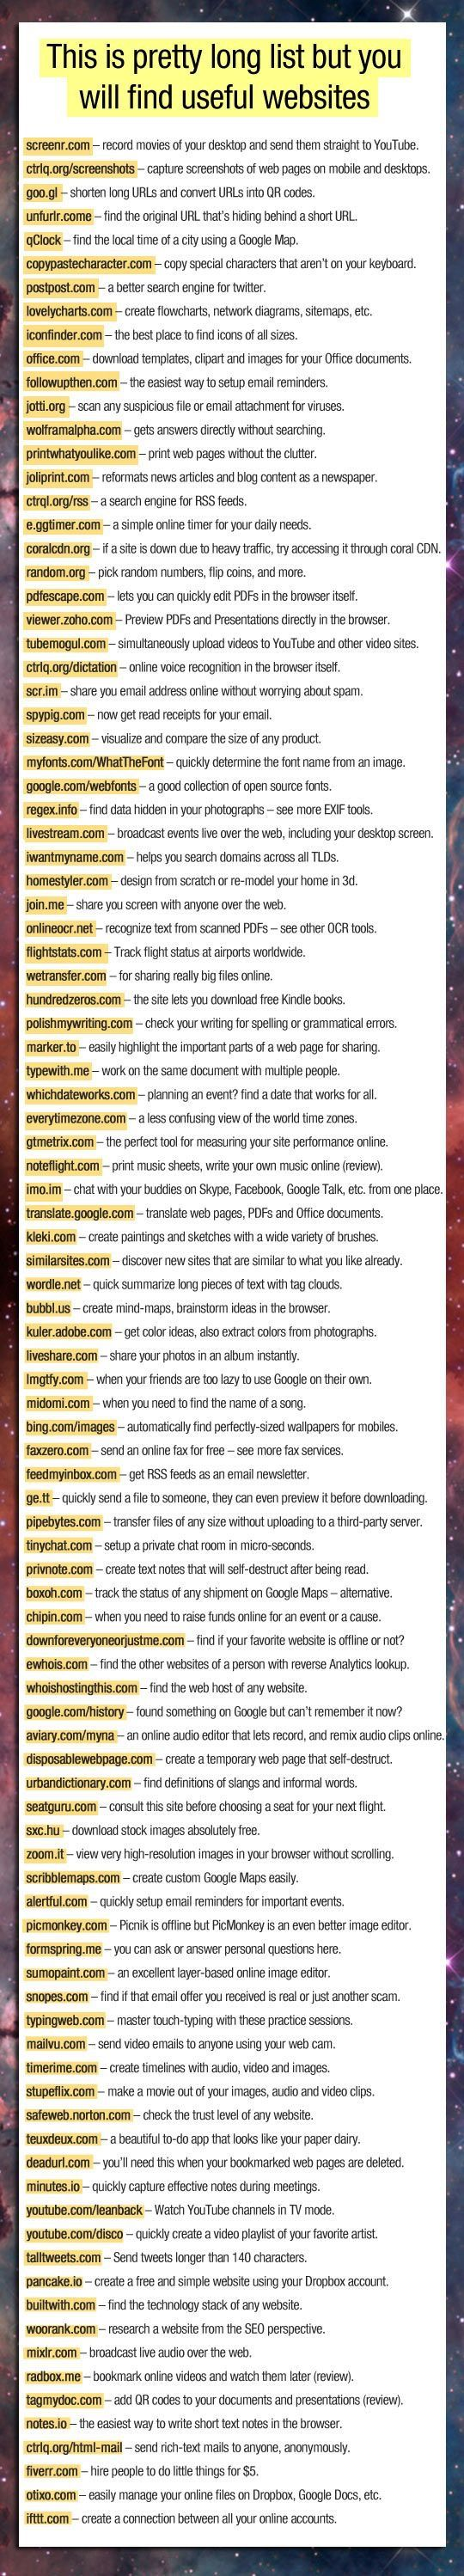 Long list of helpful websites for a variety of needs